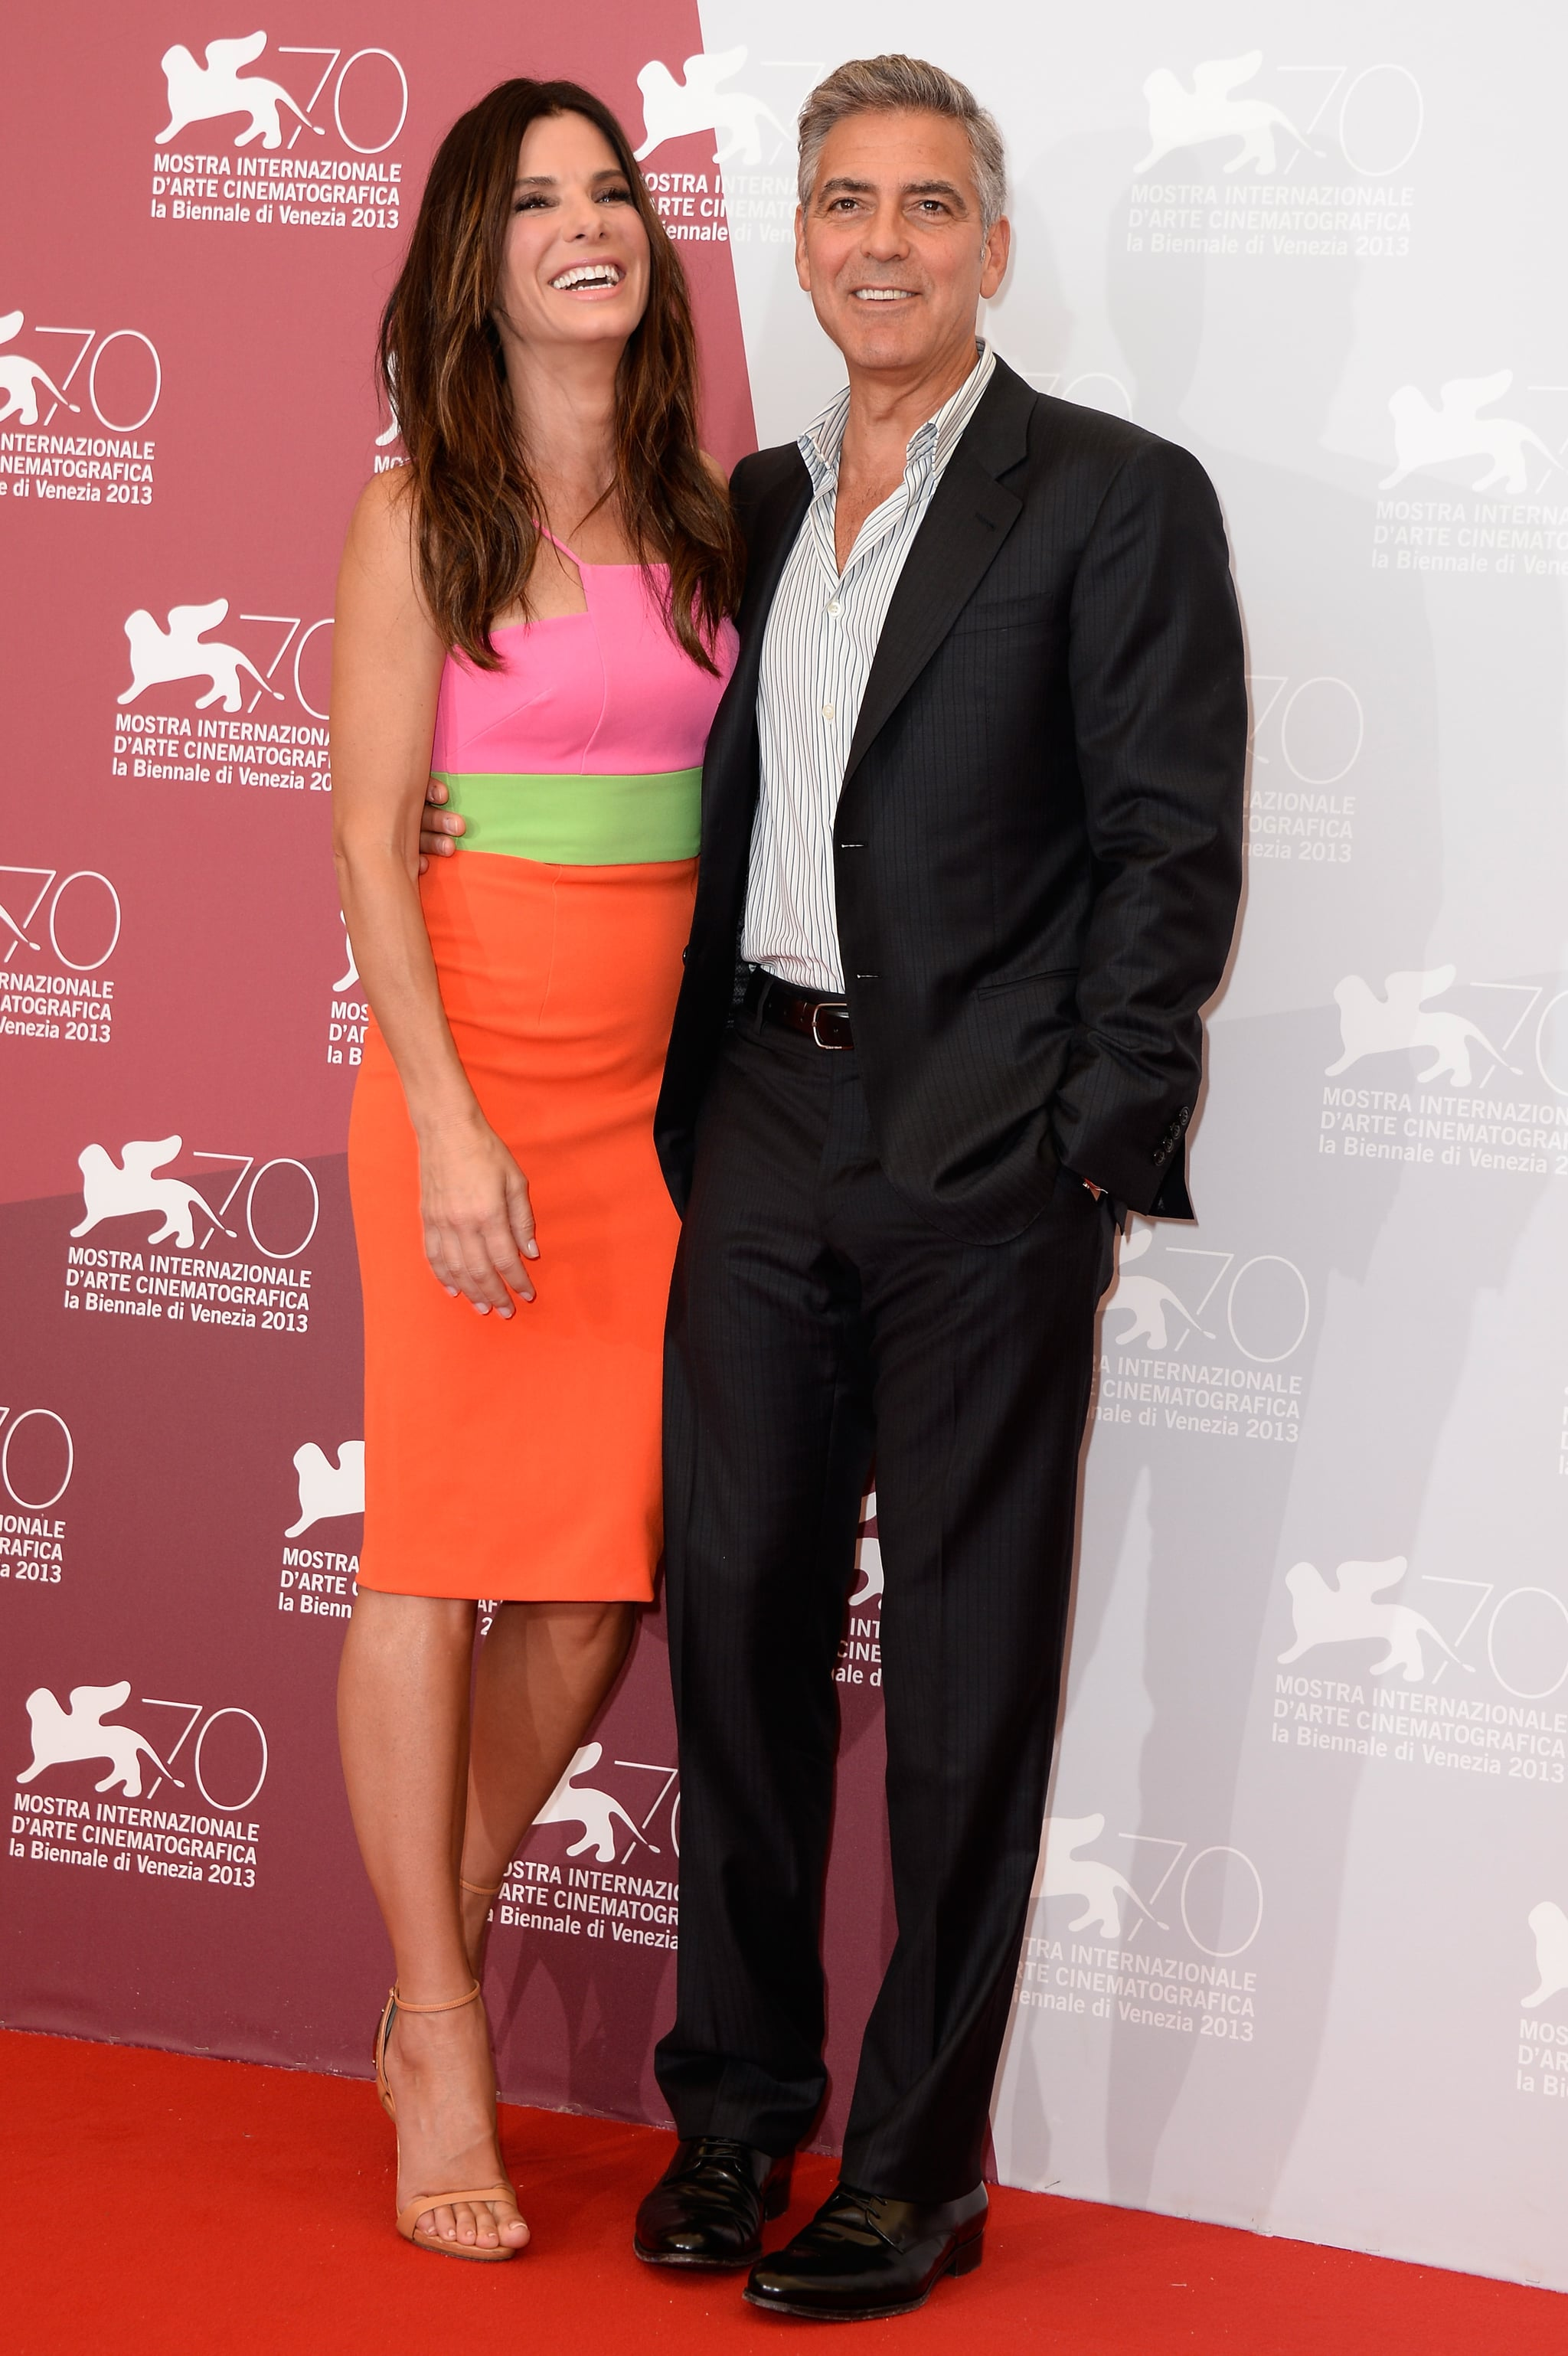 George Clooney and Sandra Bullock posed at the photocall for their film, Gravity, in Venice.